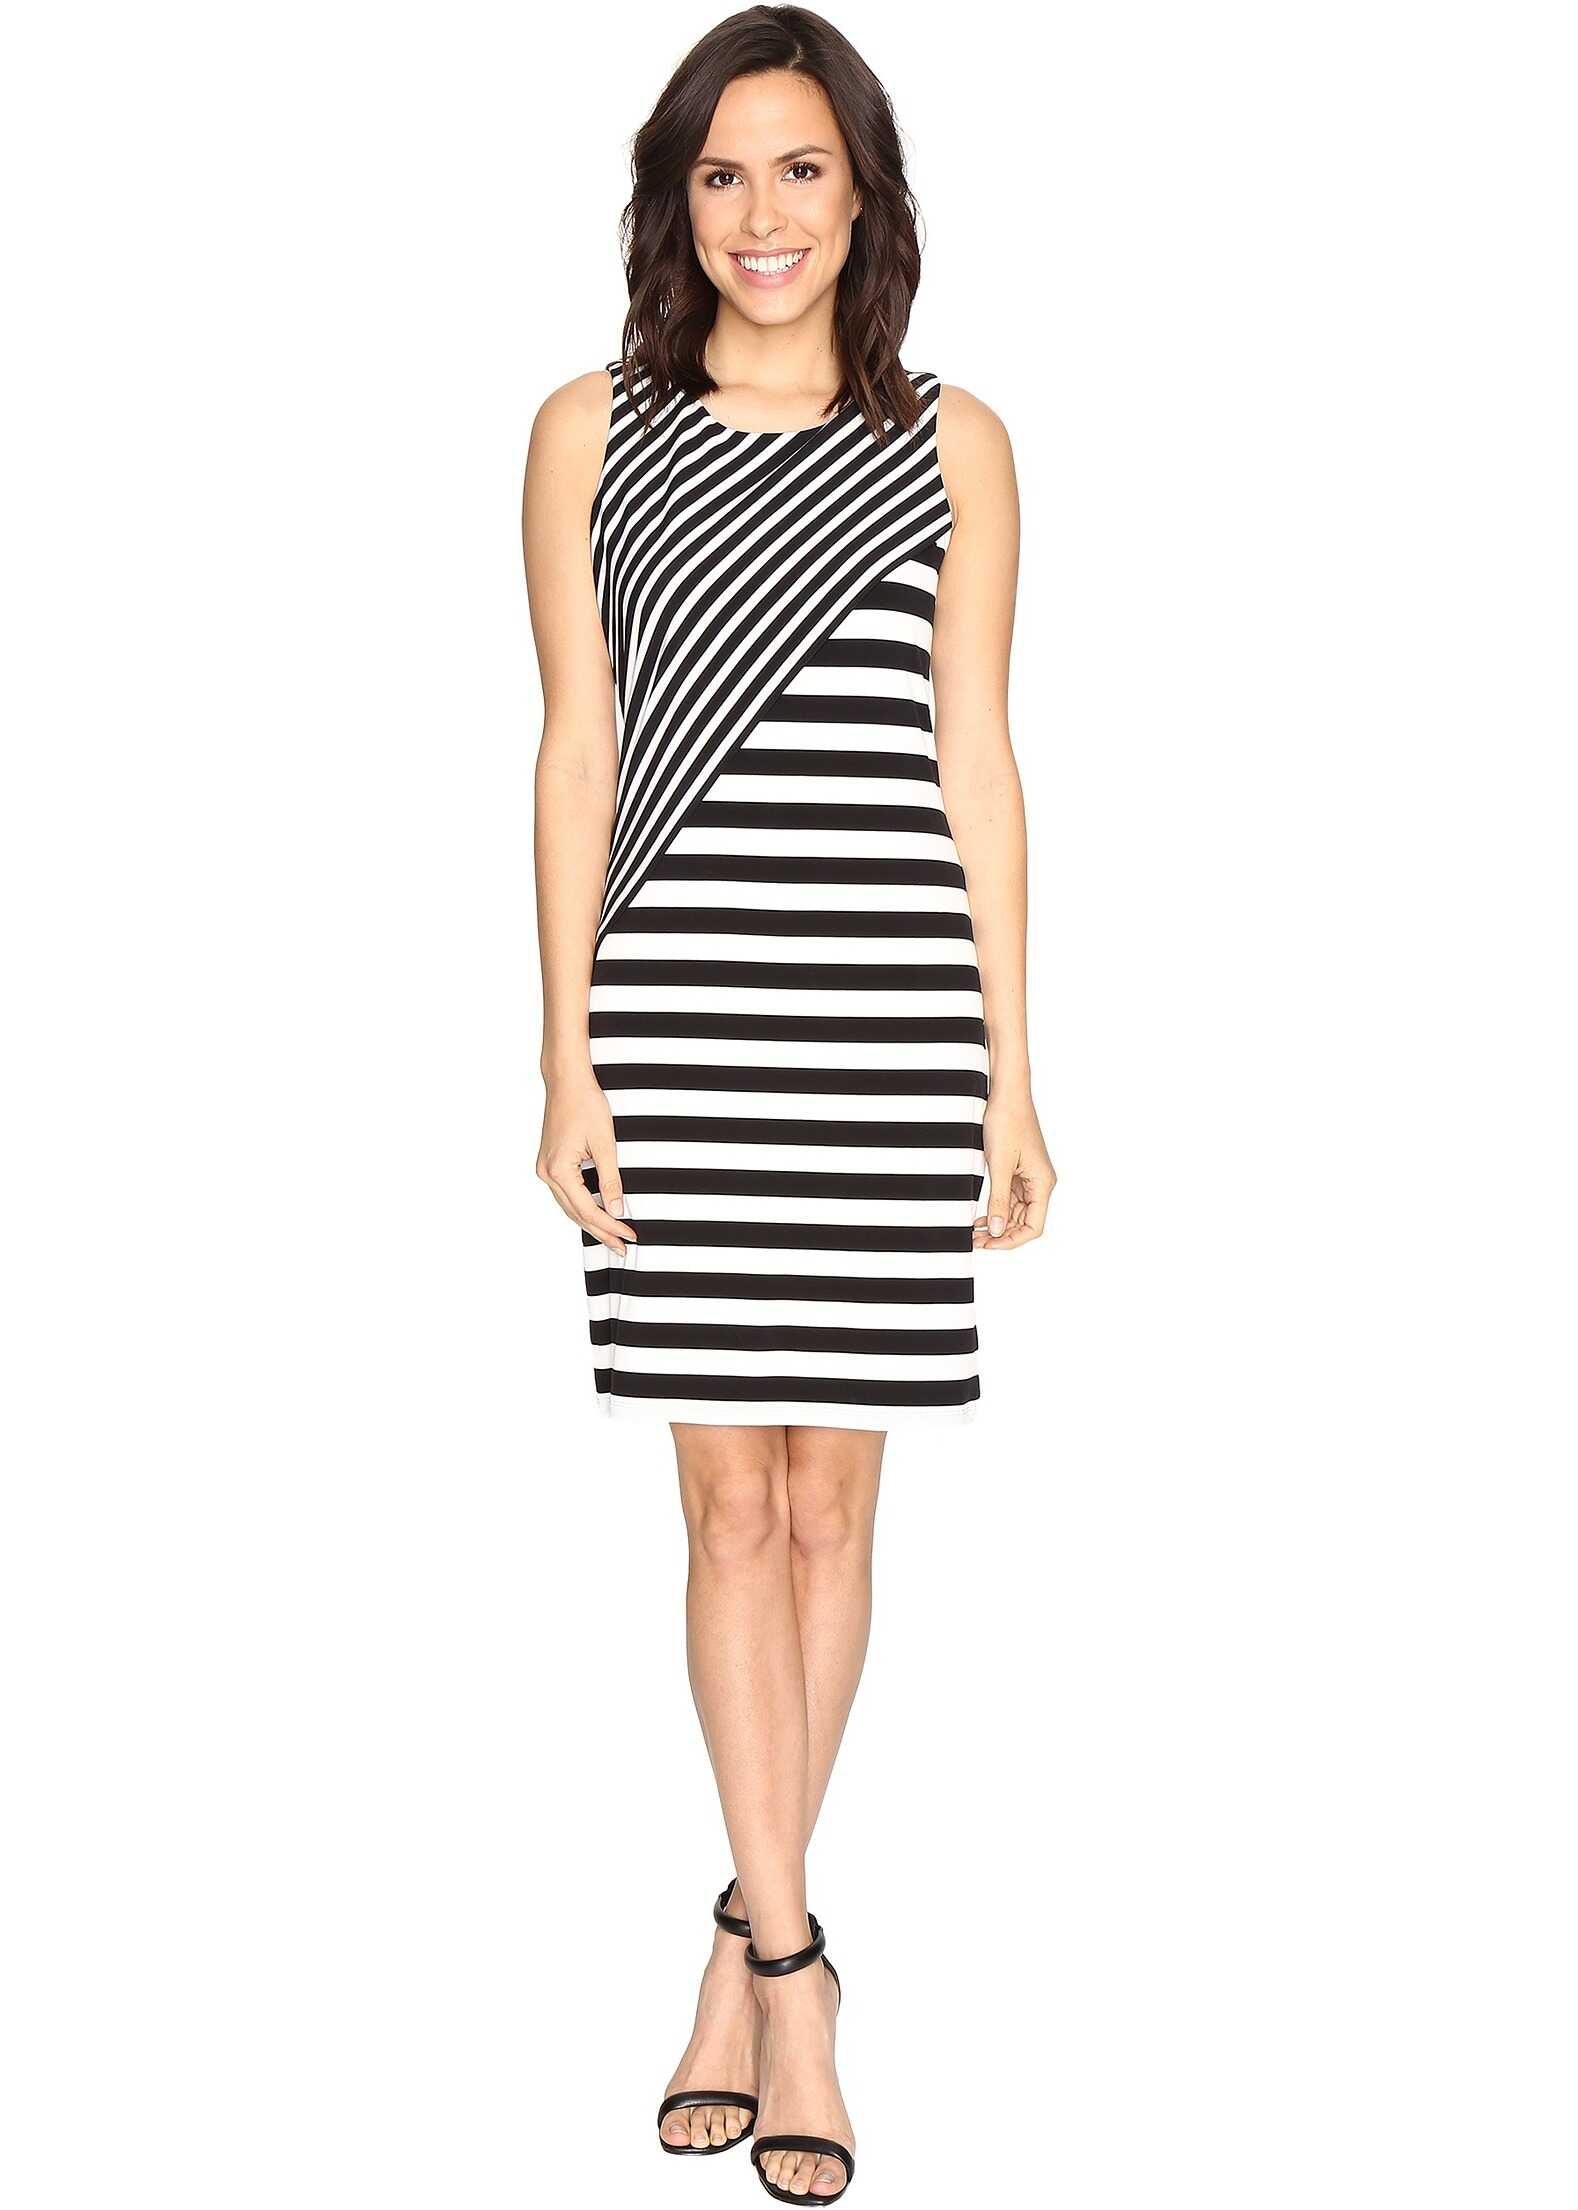 Calvin Klein Striped Combo Dress Black/White